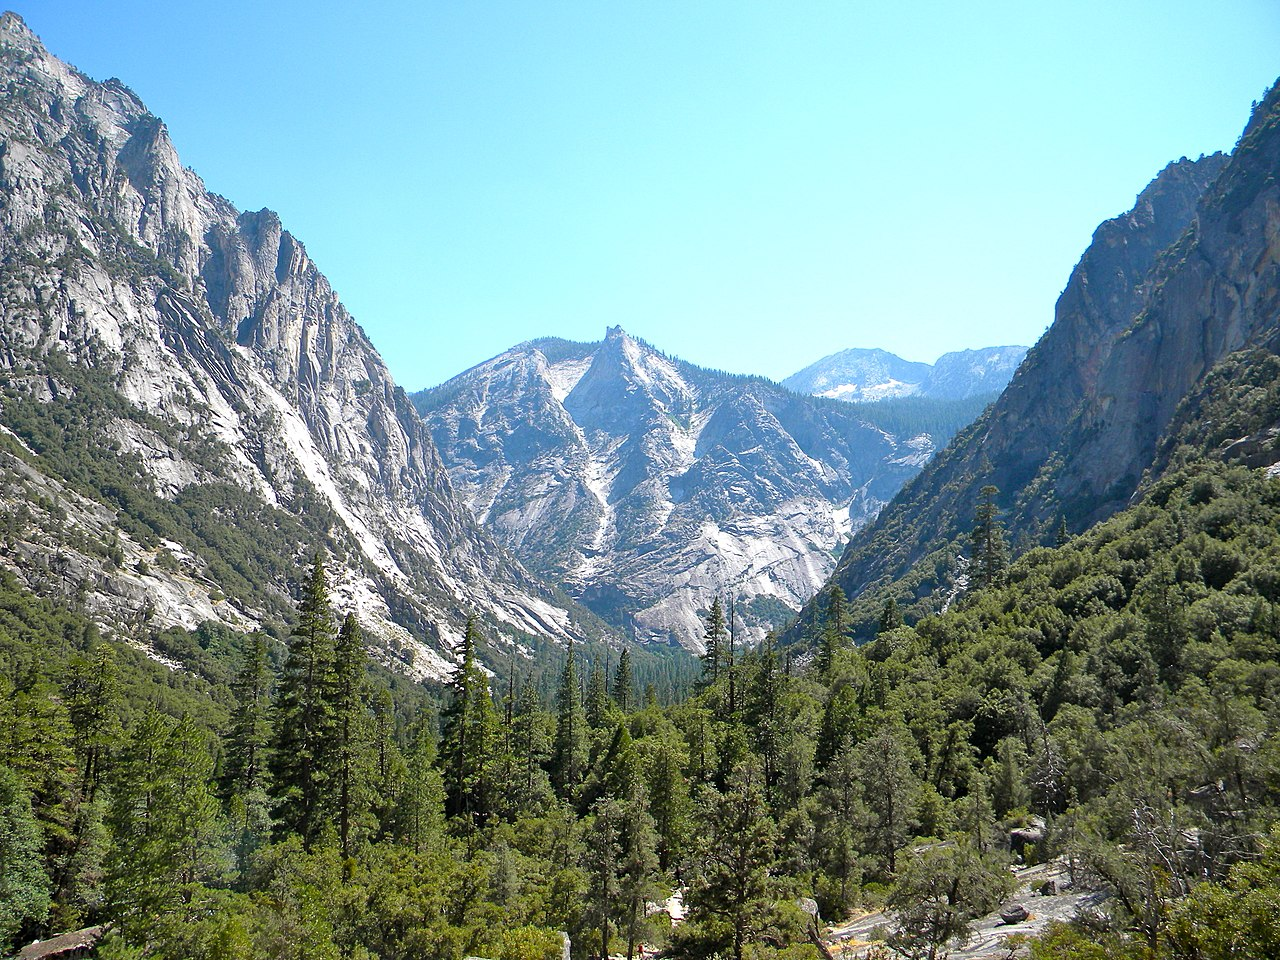 Must Visit National Park in California-Kings Canyon National Park